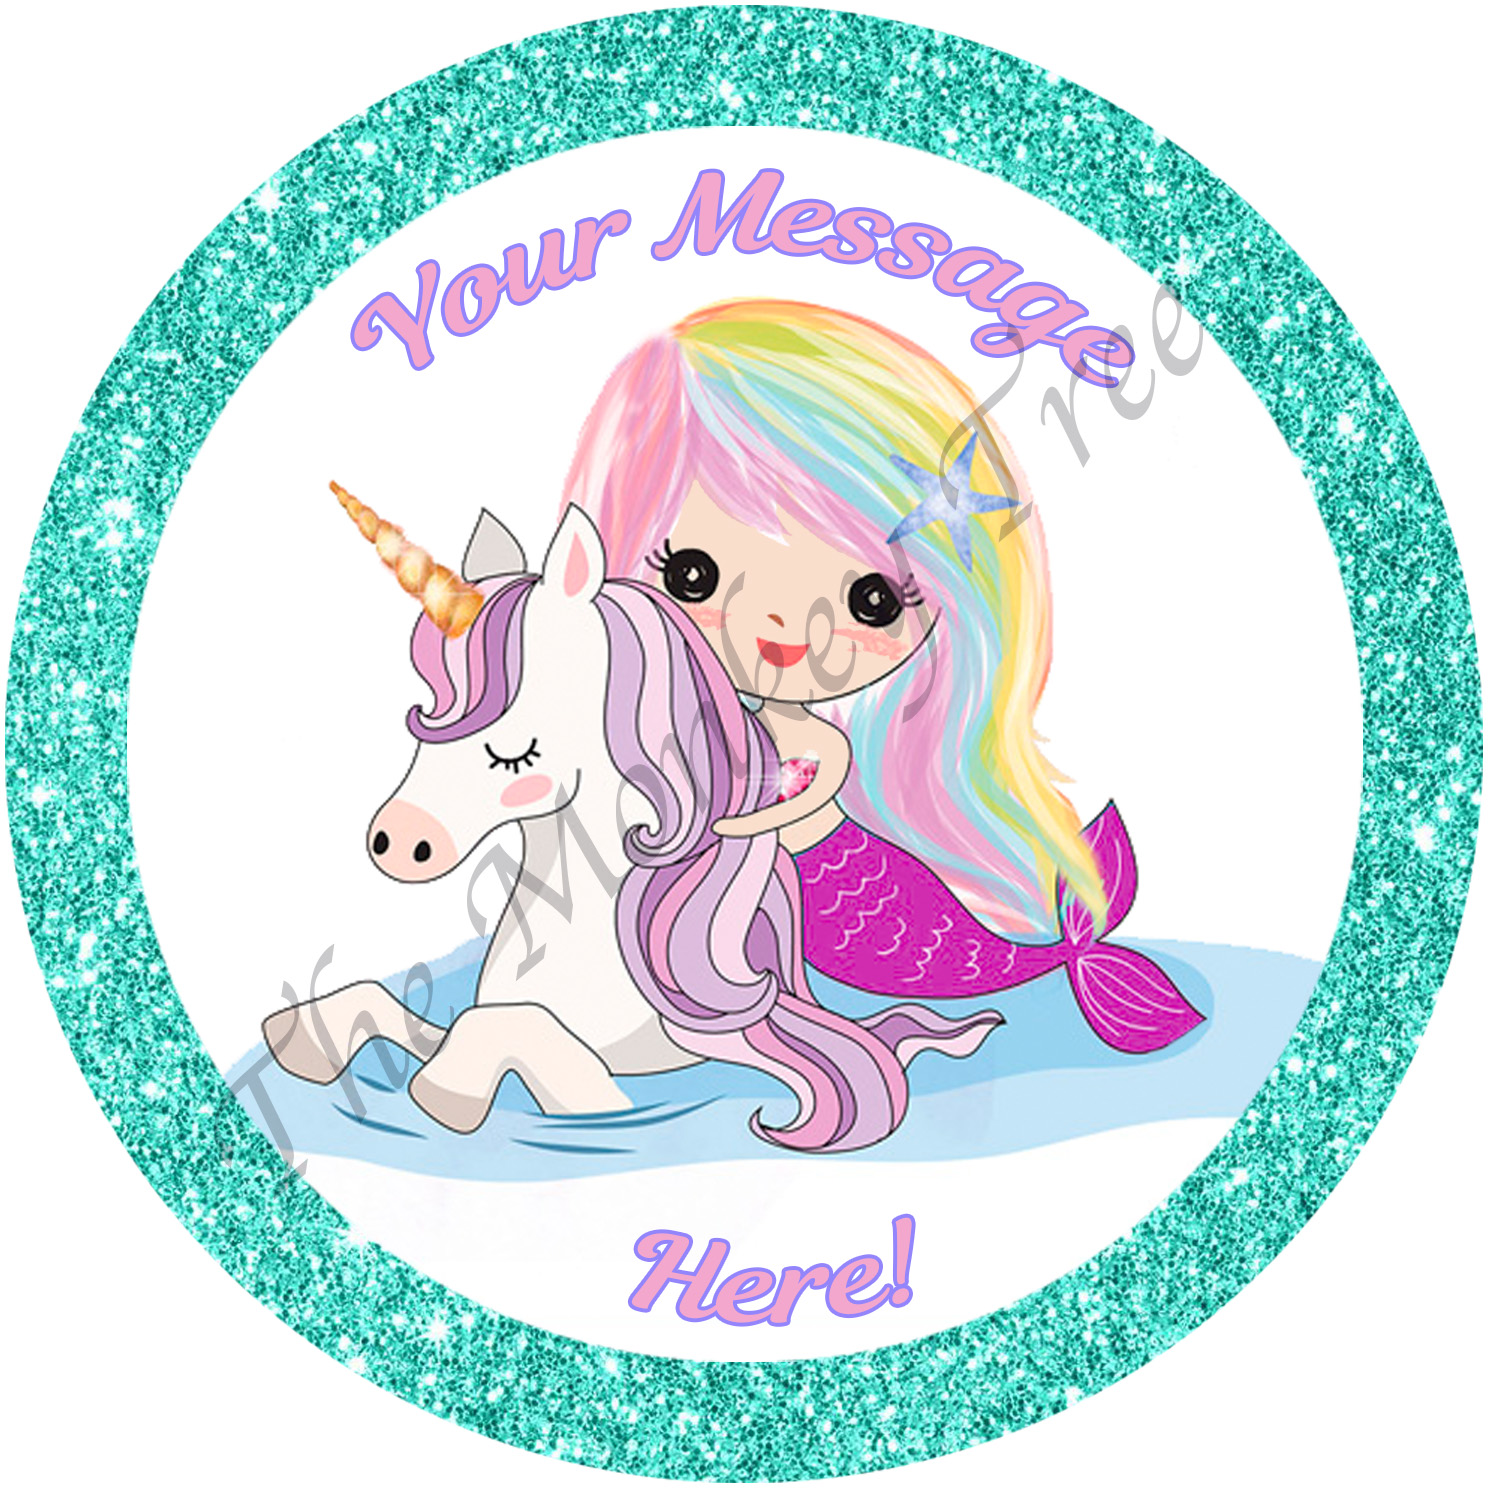 mermaid unicorn edible cake image birthday party magical glitter